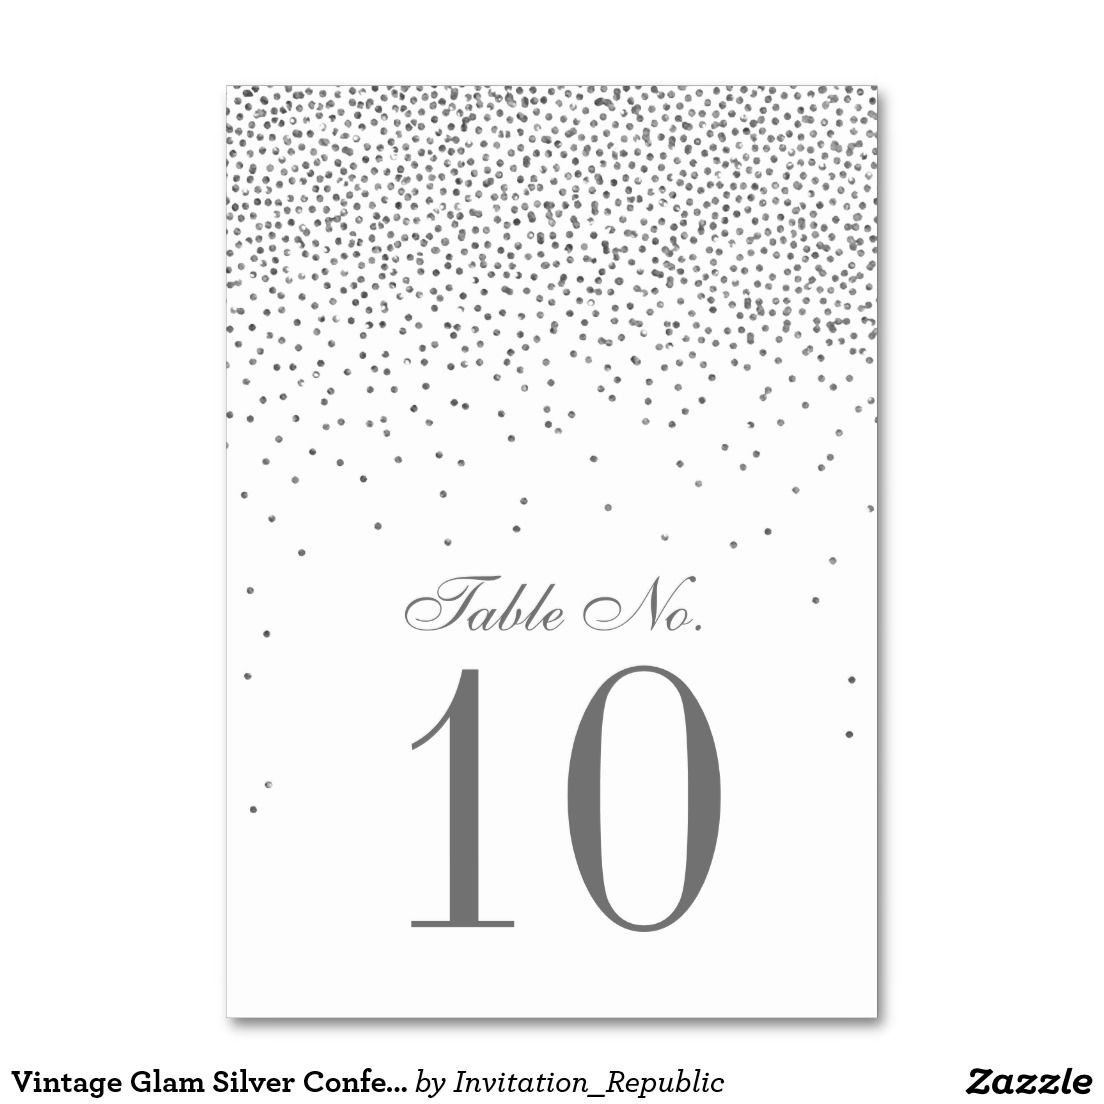 Vintage Glam Silver Confetti Wedding Table Number Card Table